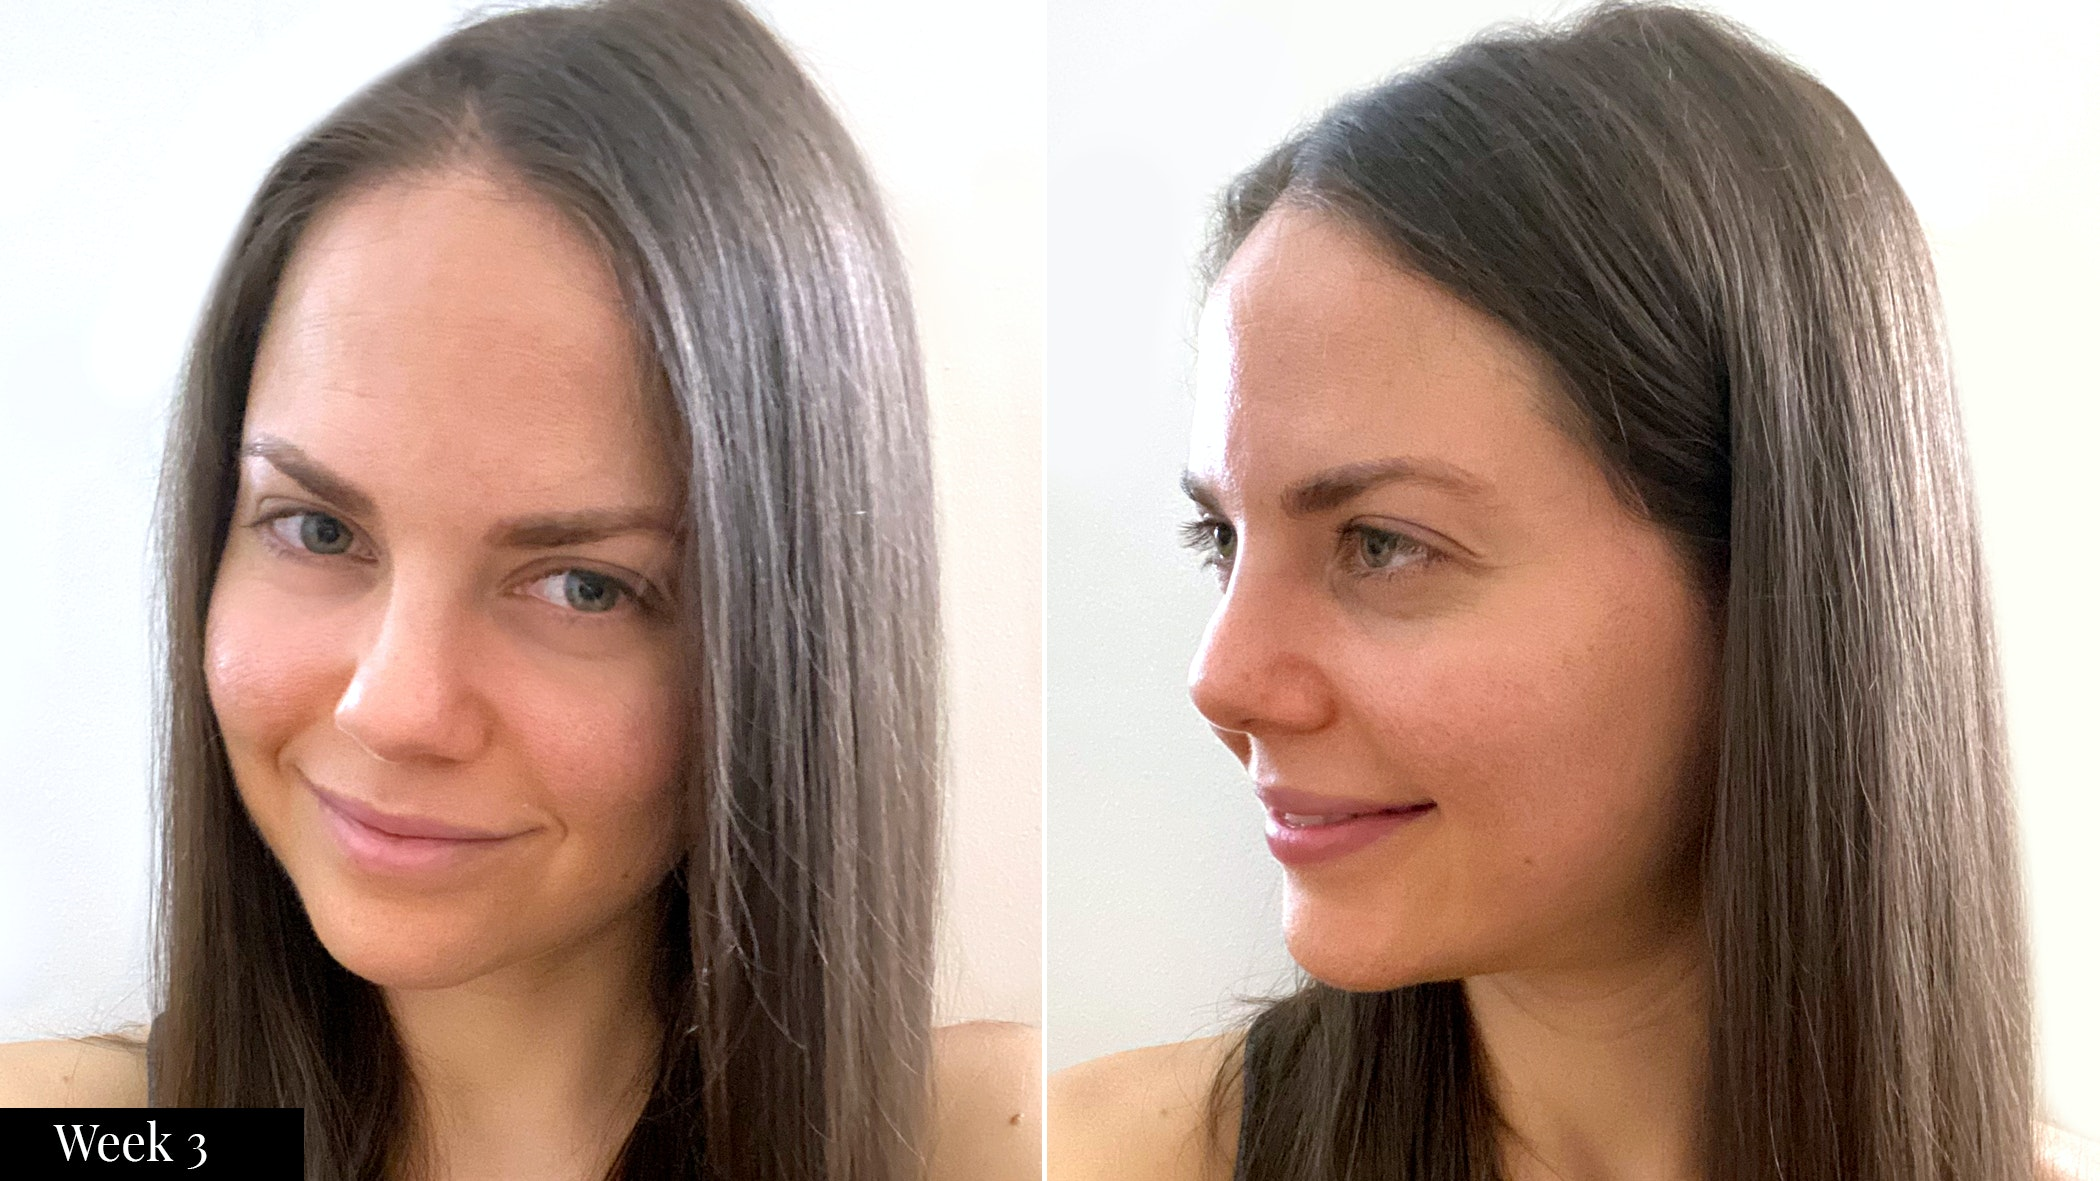 SkinMedica skincare results  after three weeks | Spotlyte